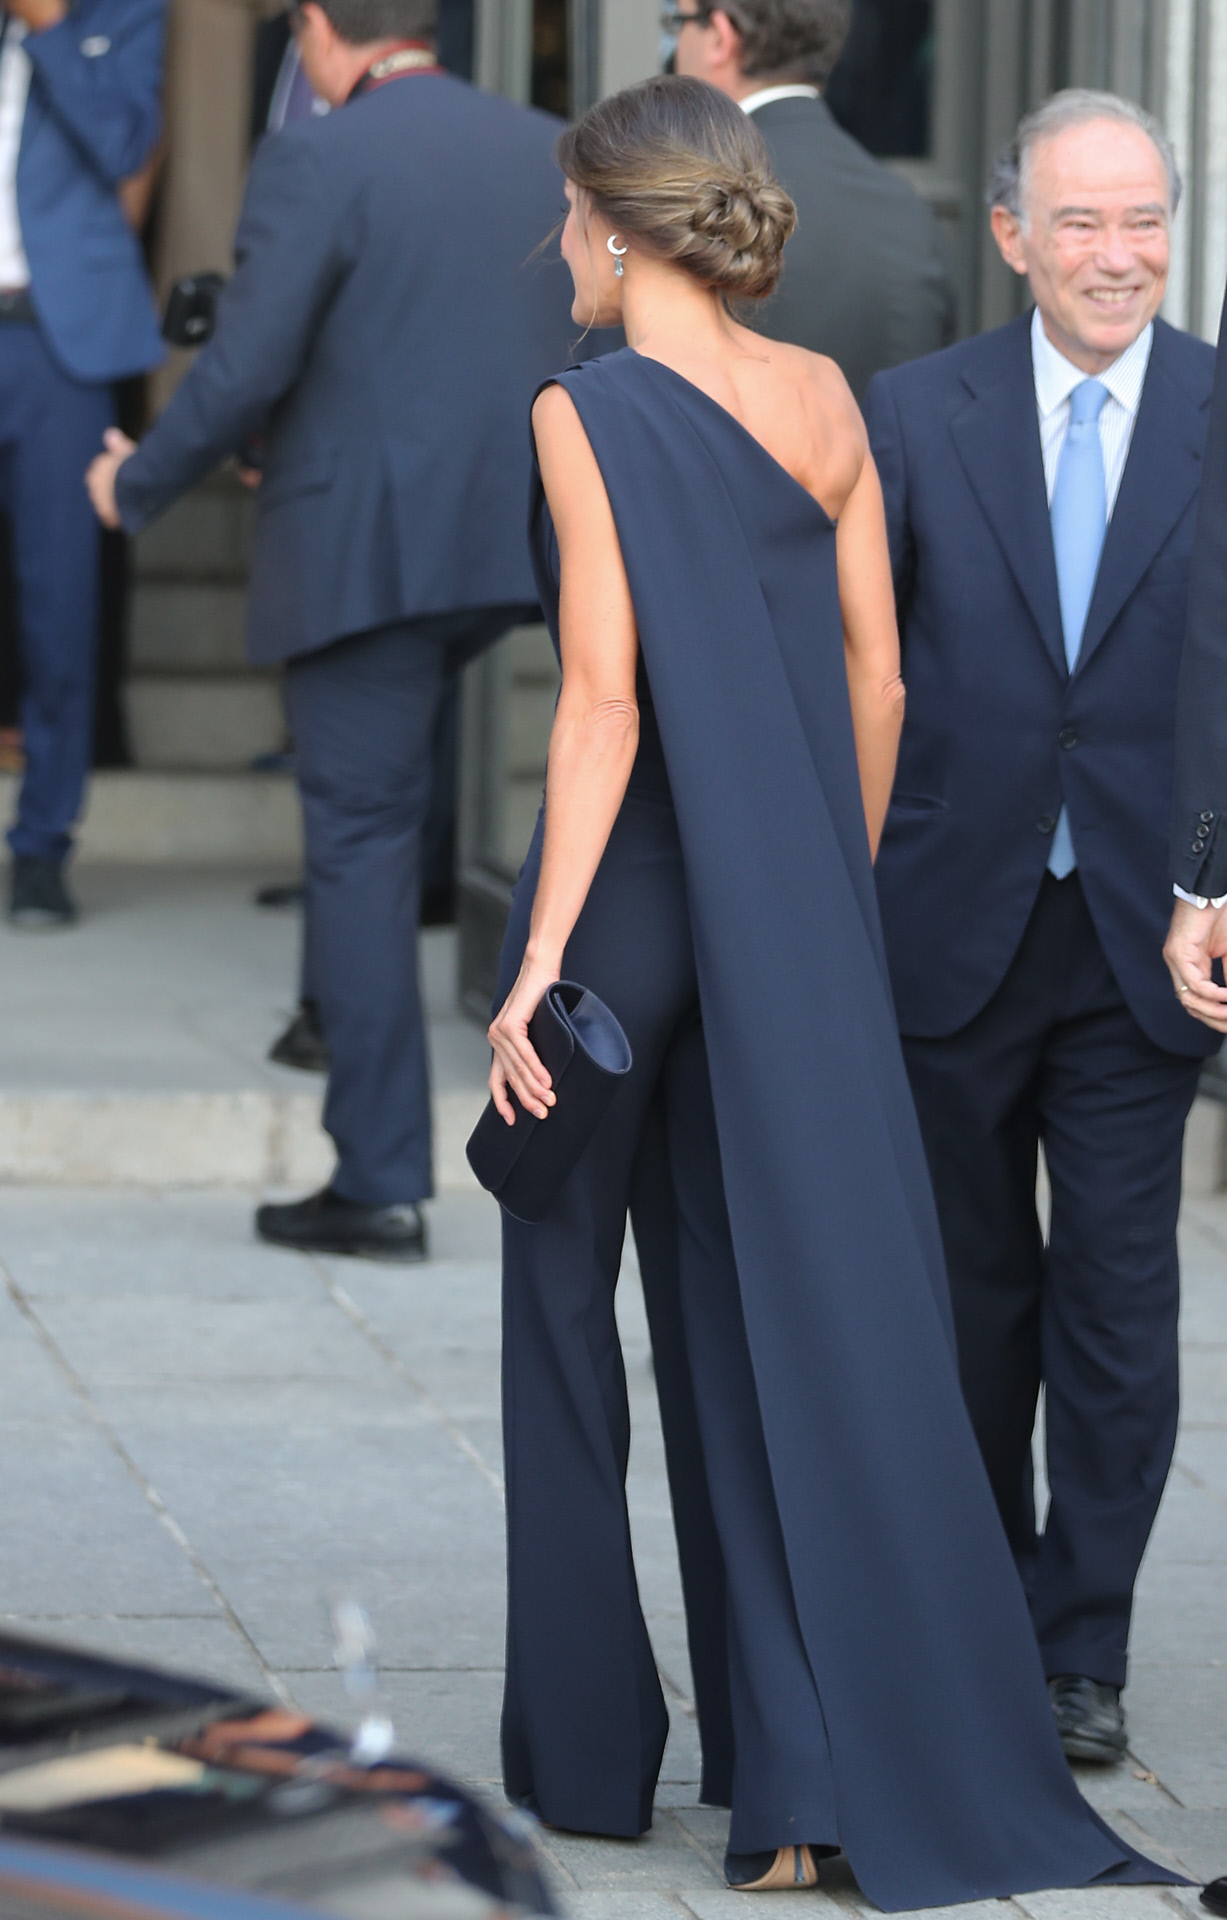 Spanish Queen Letizia attending the opening of the season of the Royal Theatre 2018 / 2019 in Madrid on Wednesday , 19 September 2018